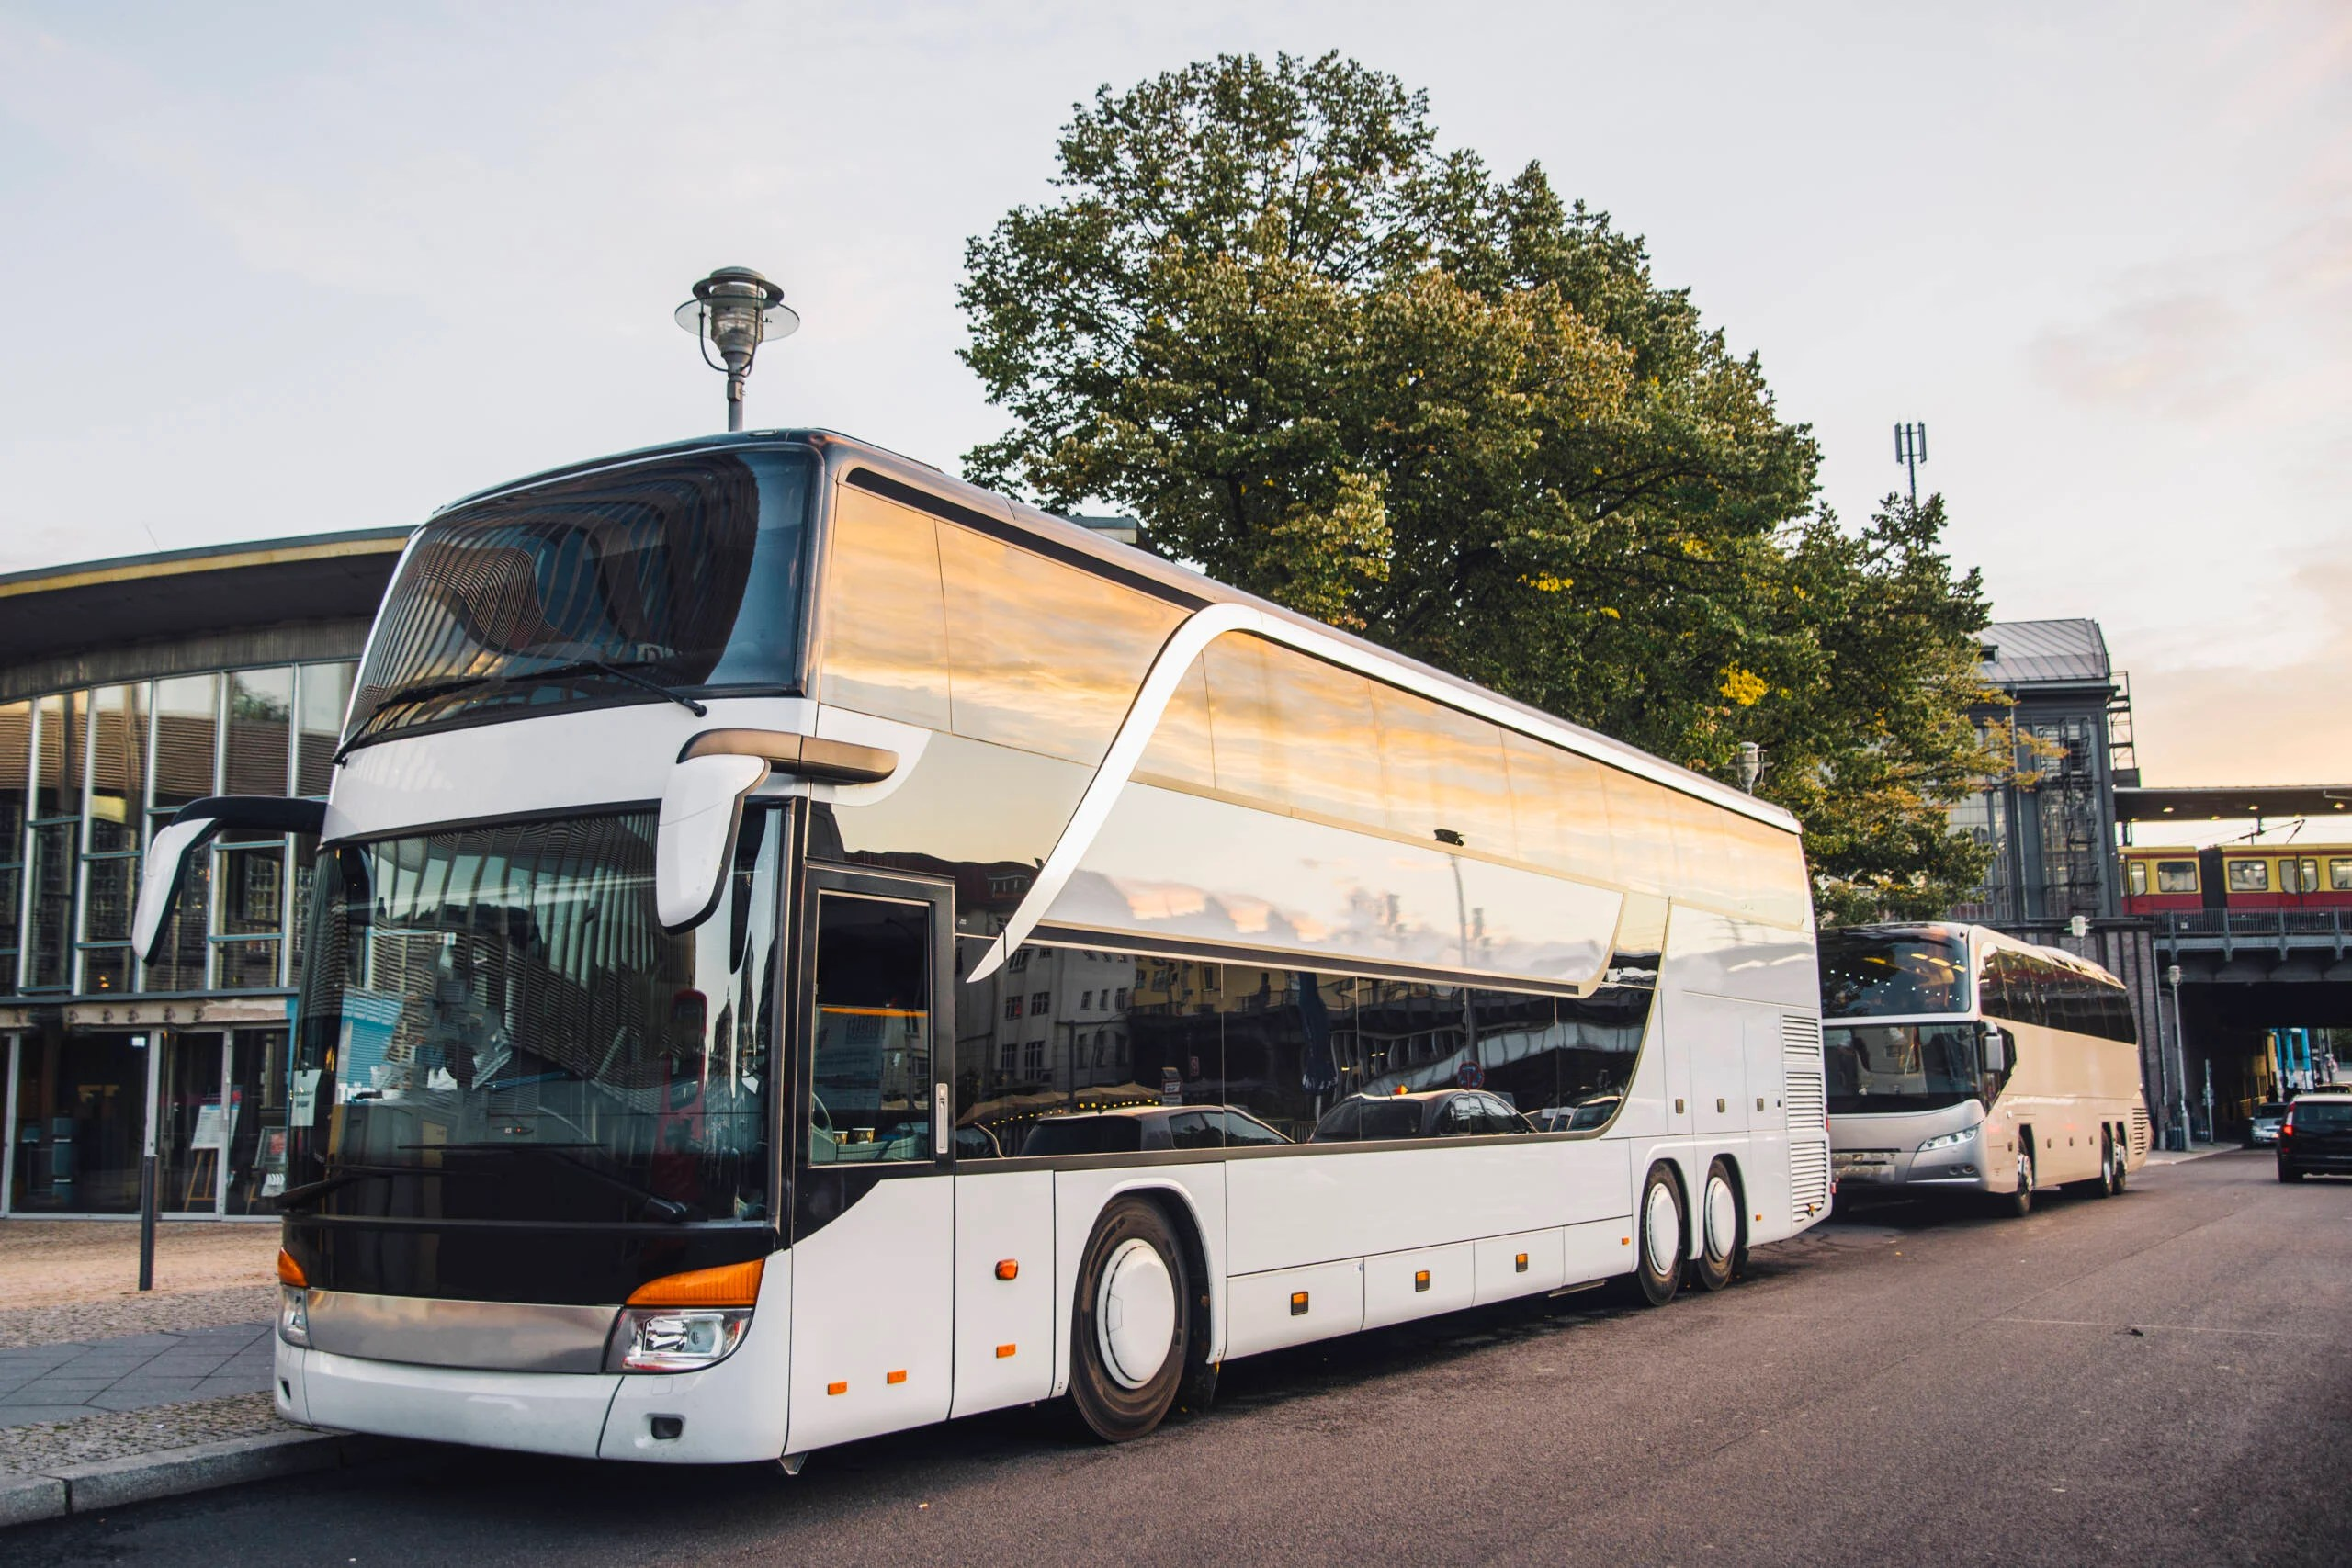 The bus that takes you from London to India: 12,000 miles, 70 days, crossing 18 countries